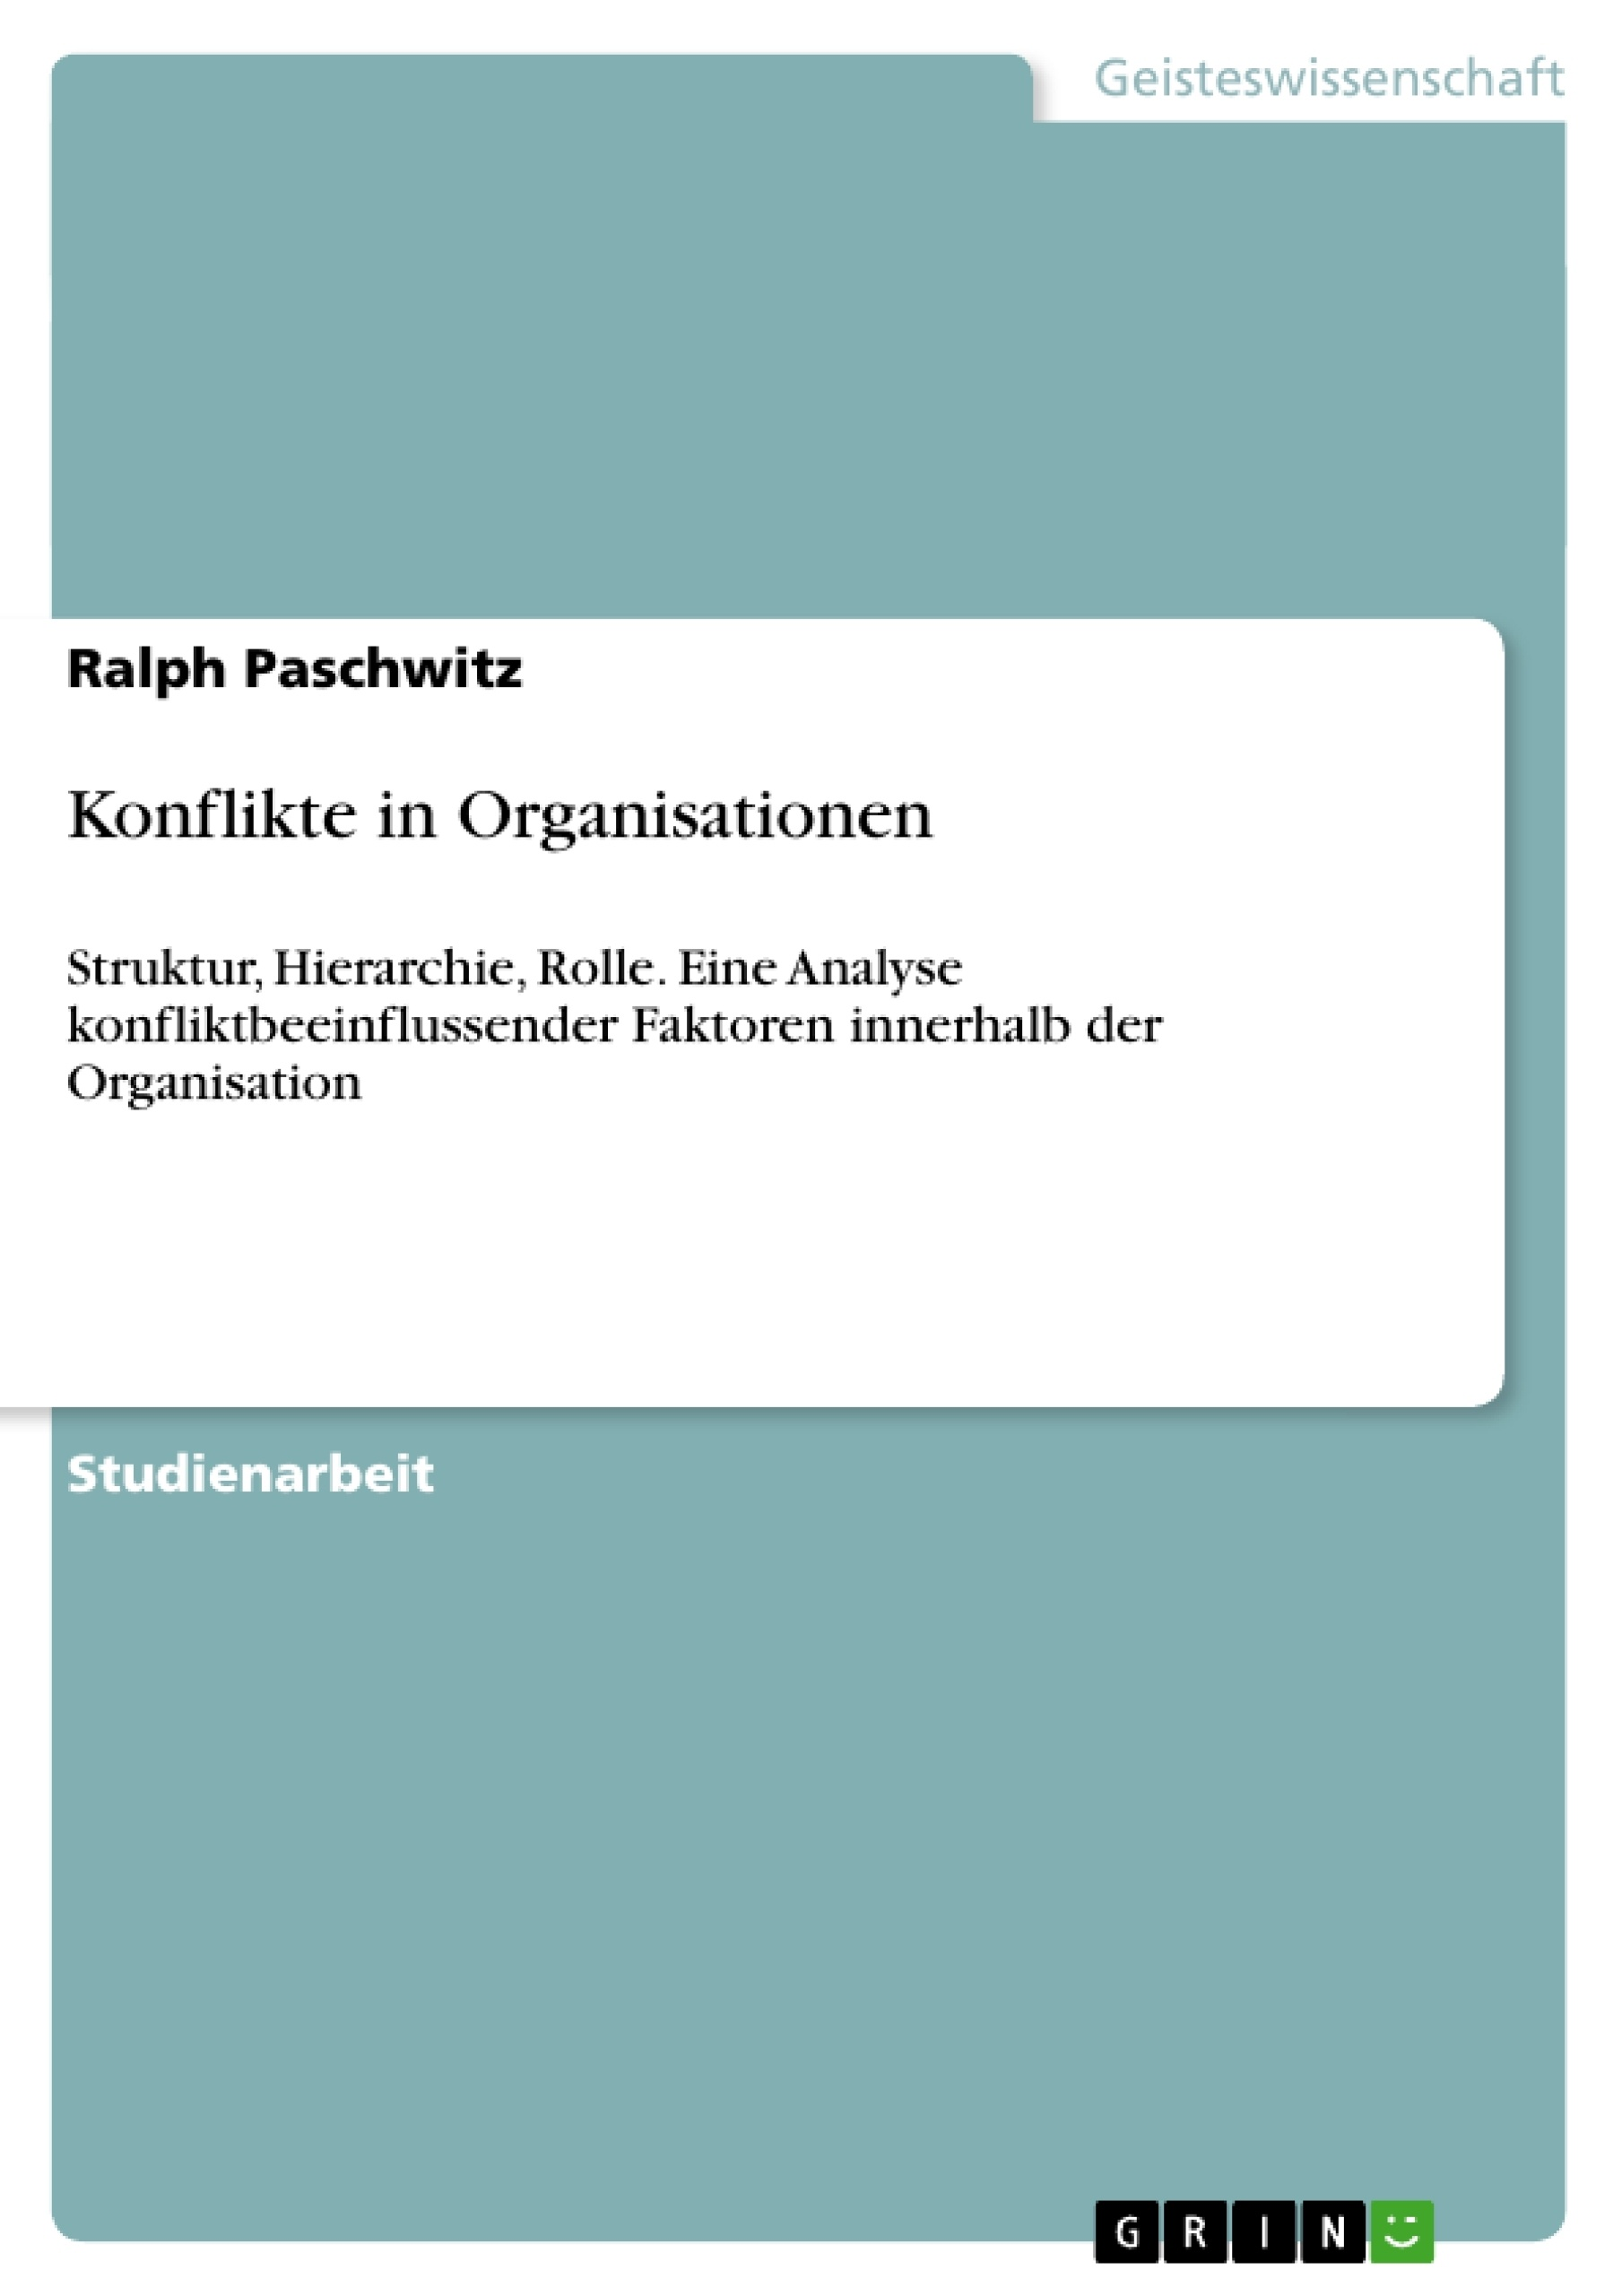 Titel: Konflikte in Organisationen